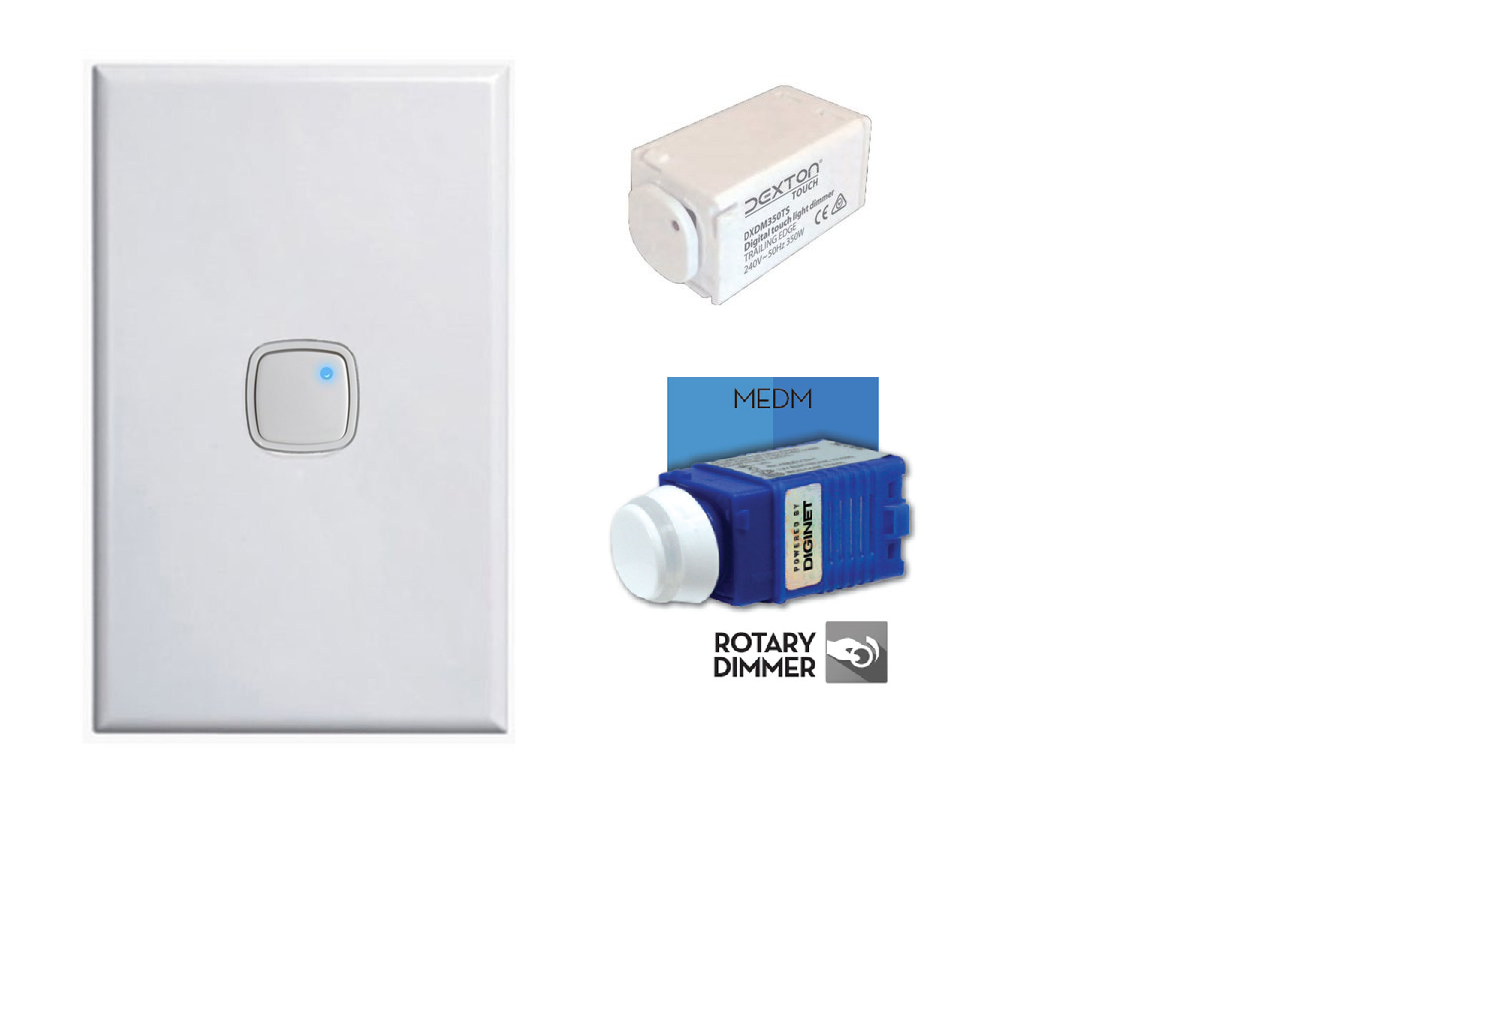 The Best LED Dimmers To Buy